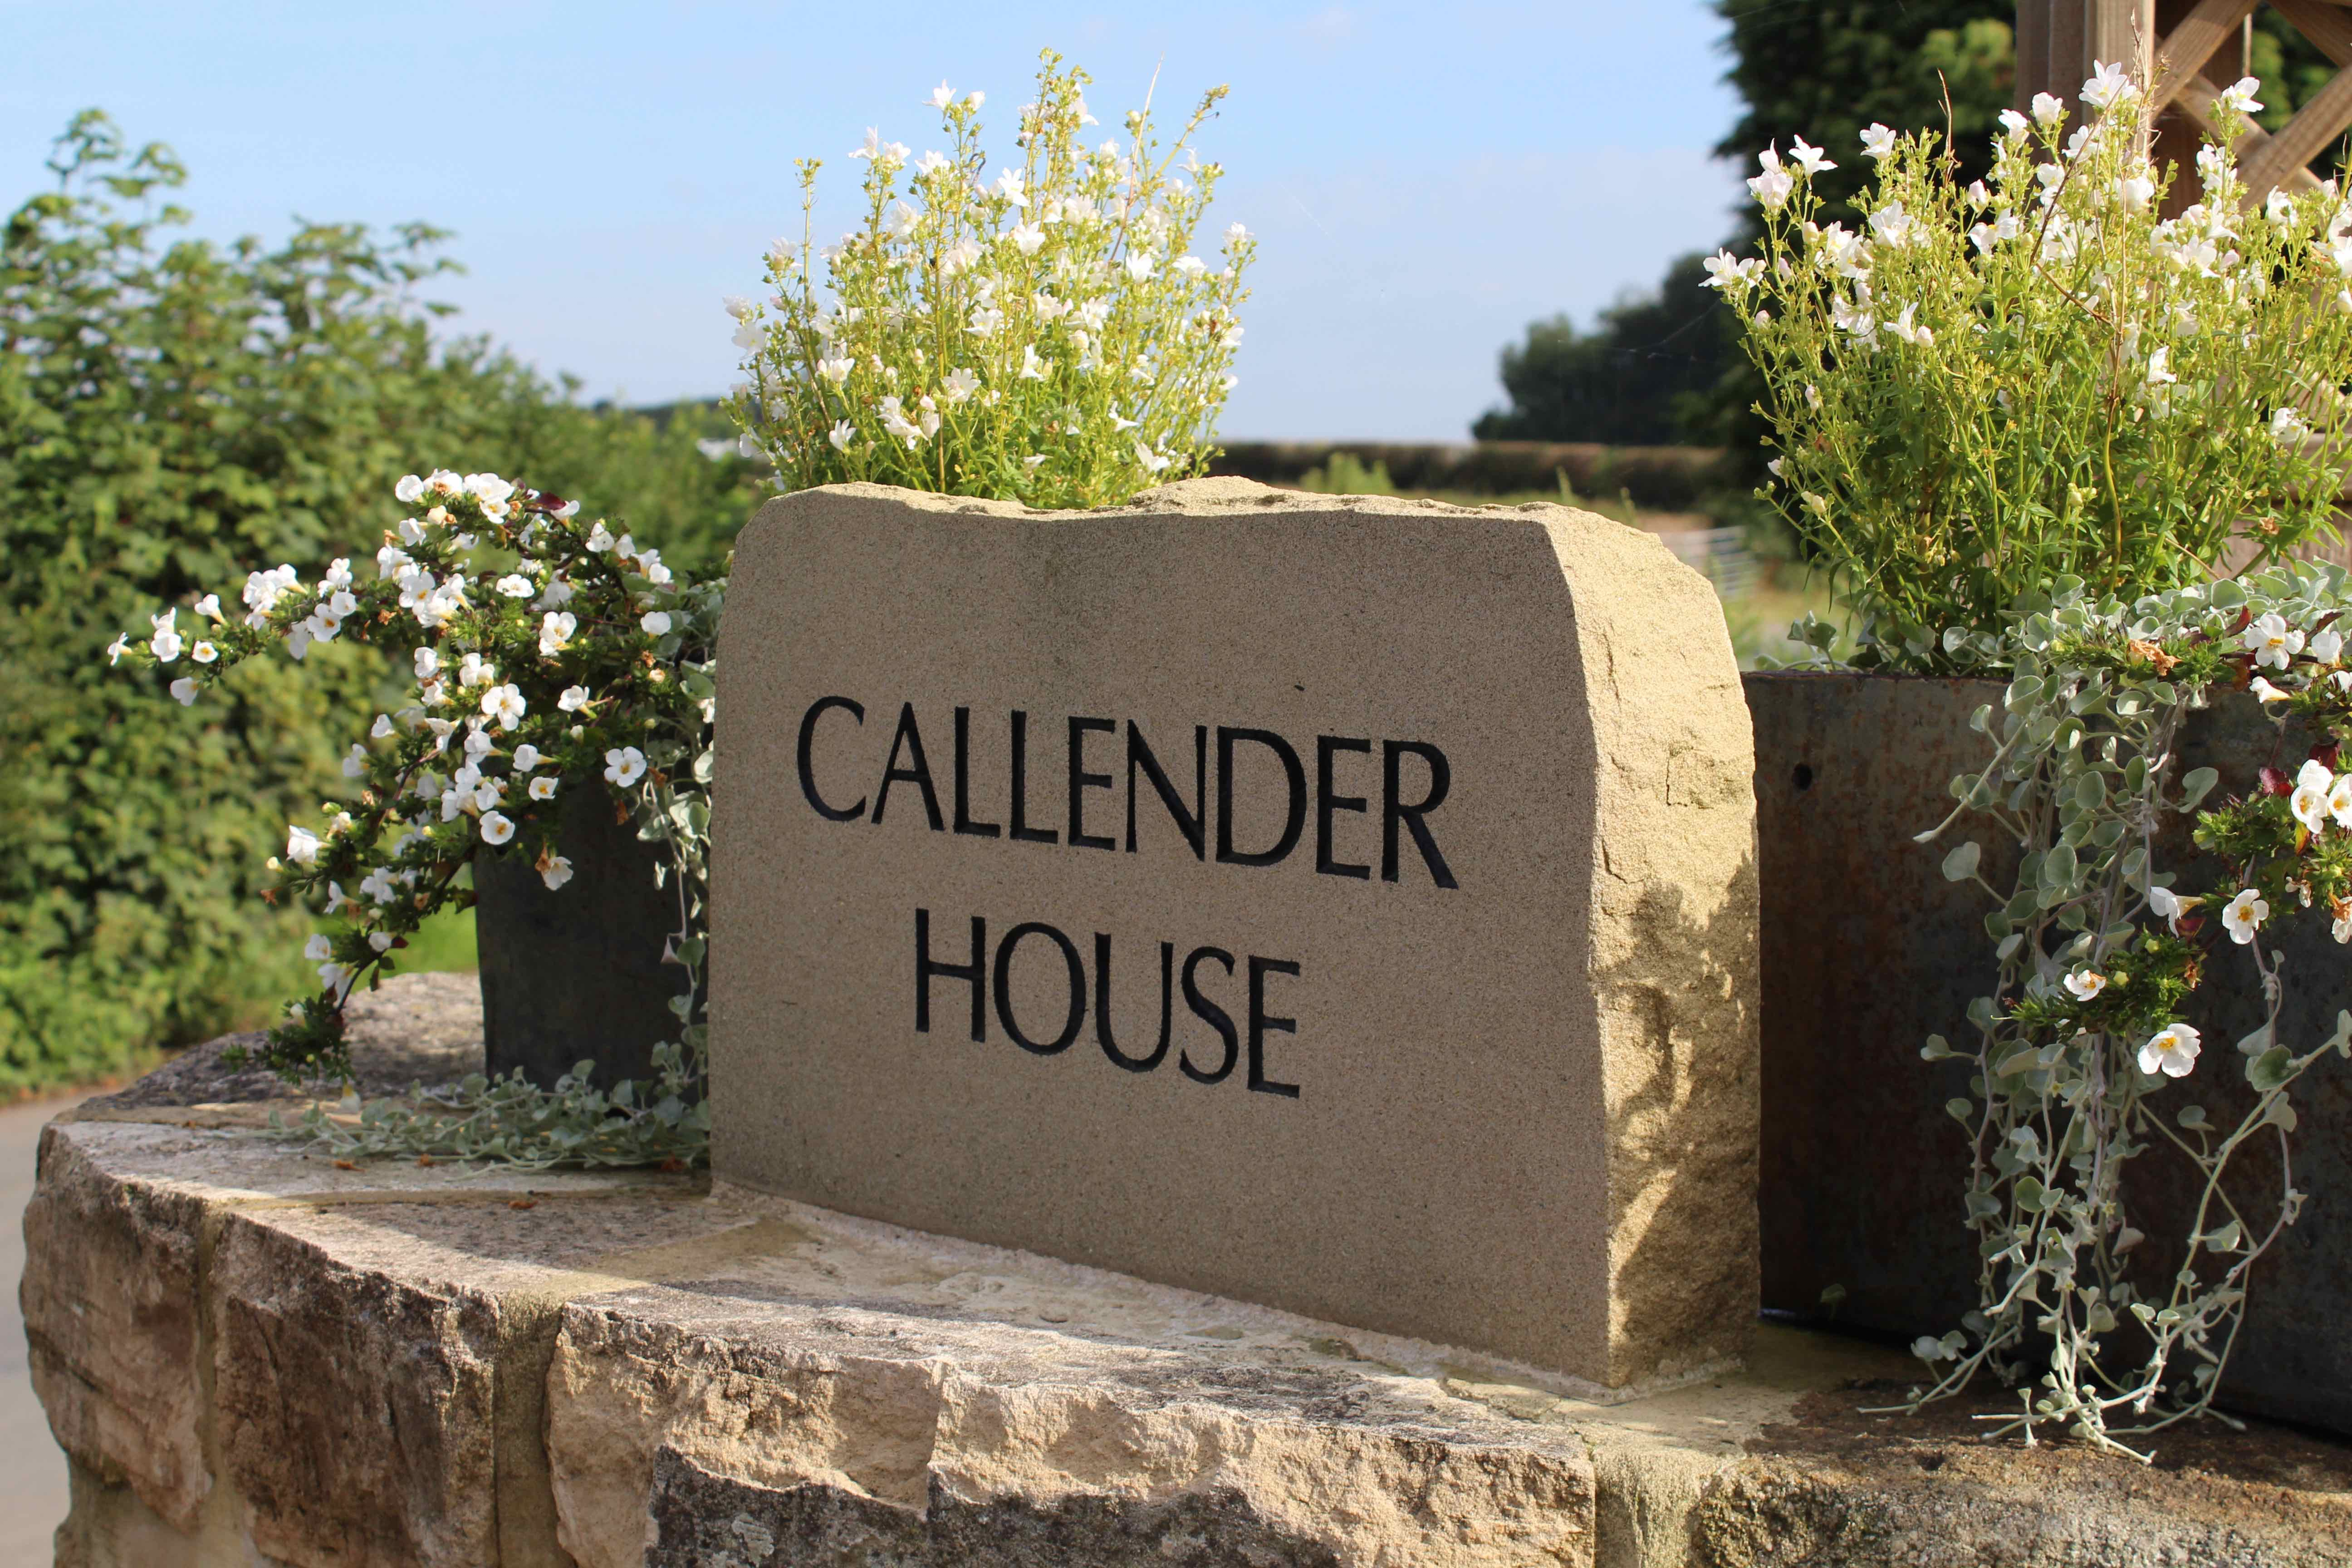 Callender house stone sign.